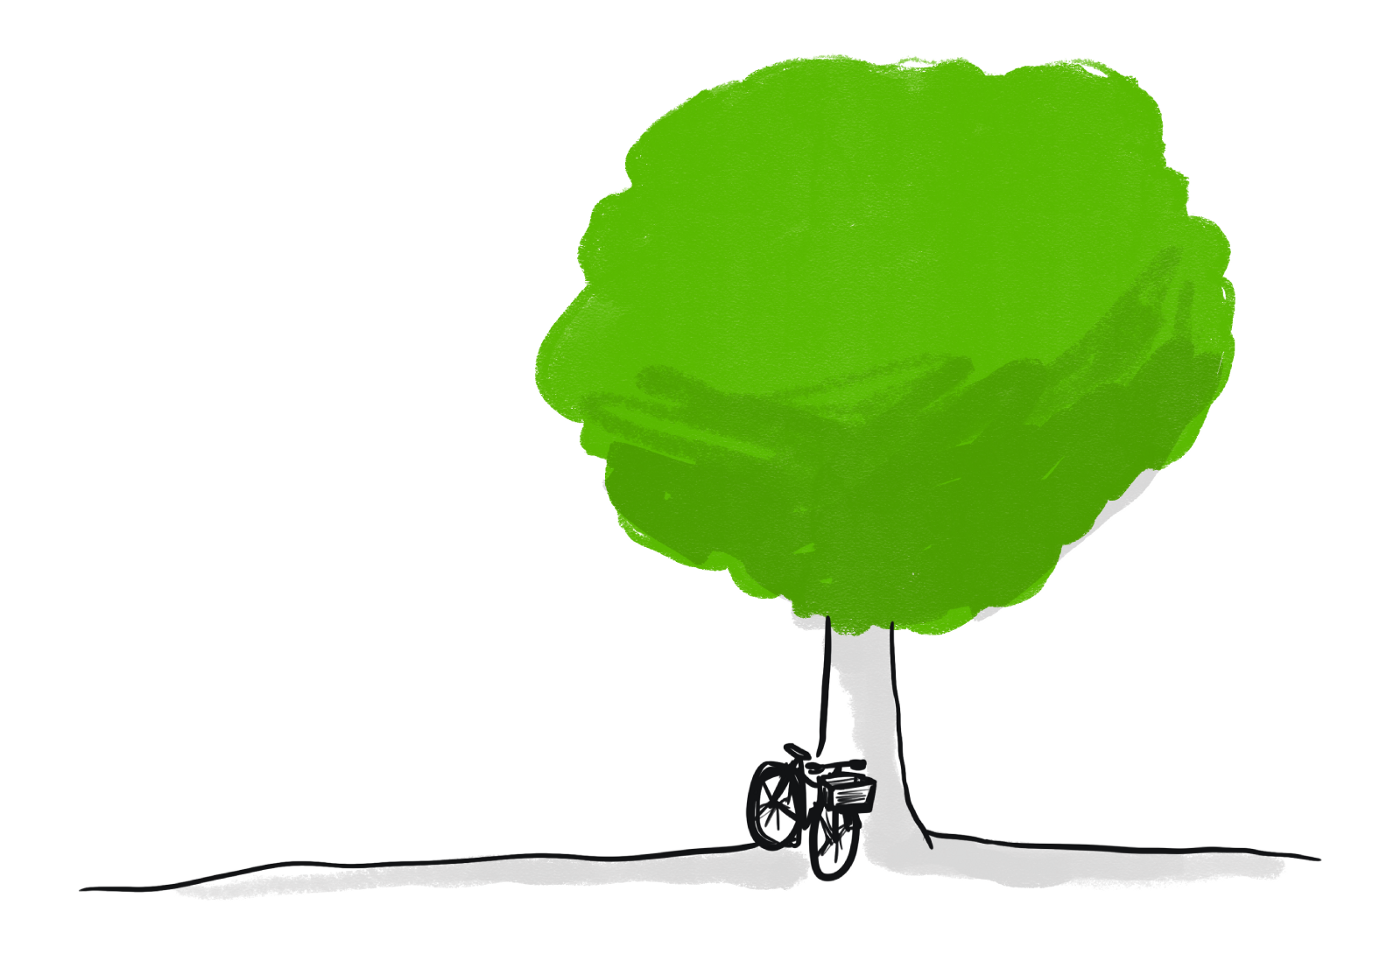 Illustration of a bicycle leaning against a tree